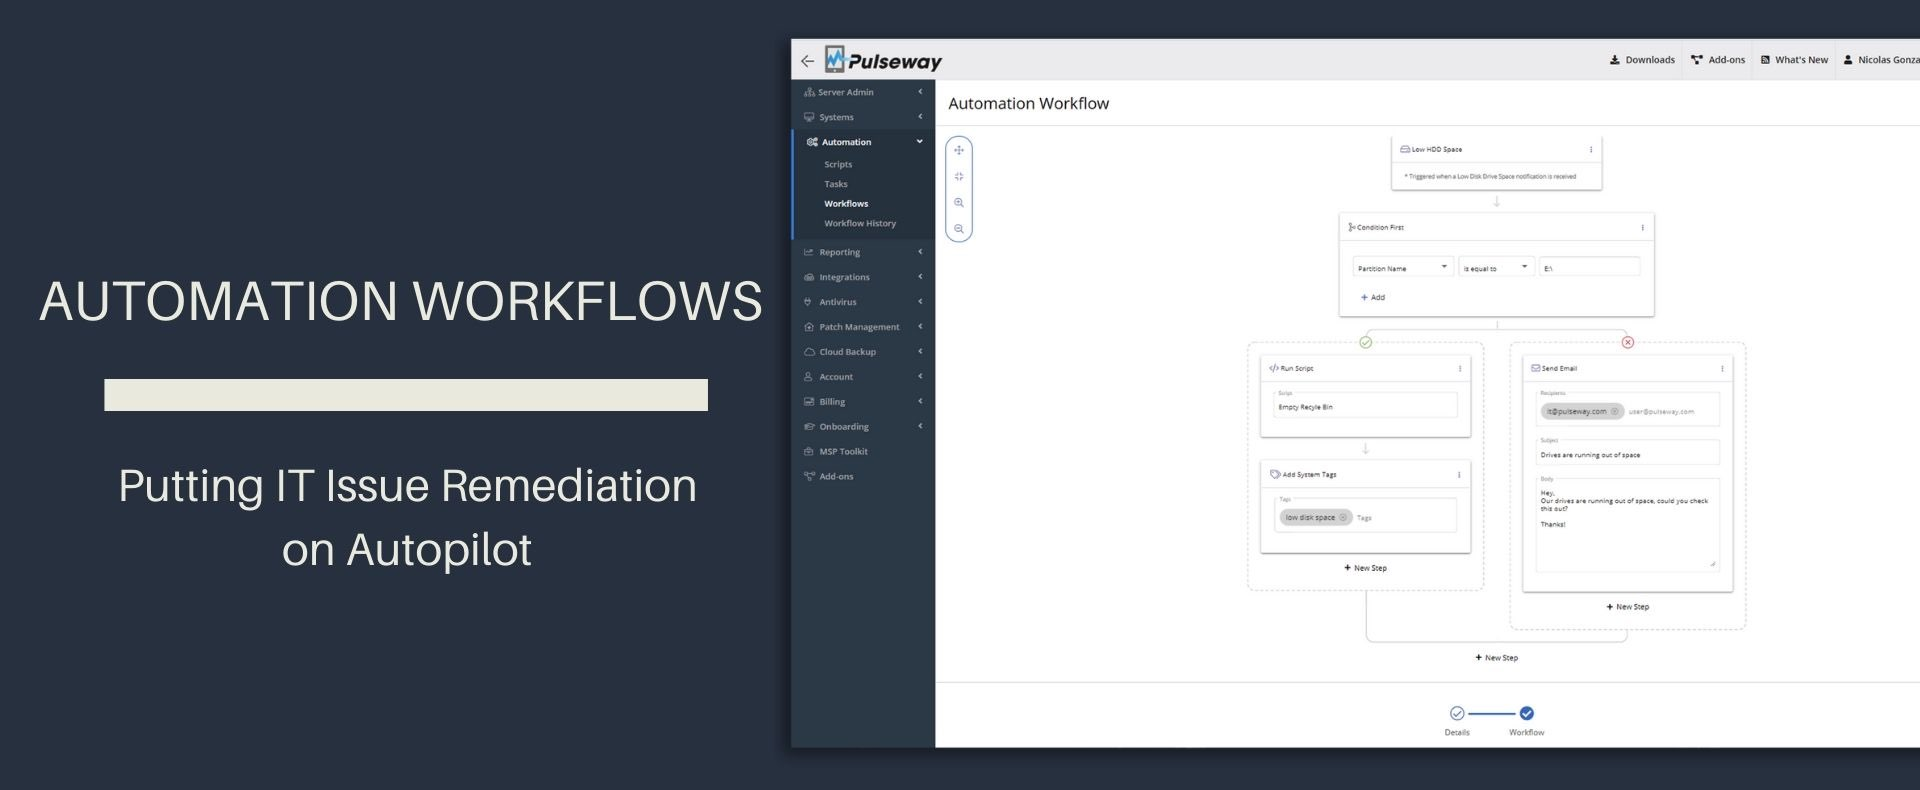 Pulseway Introduces Brand New Automation Workflows to Auto-remediate Issues on User's Behalf